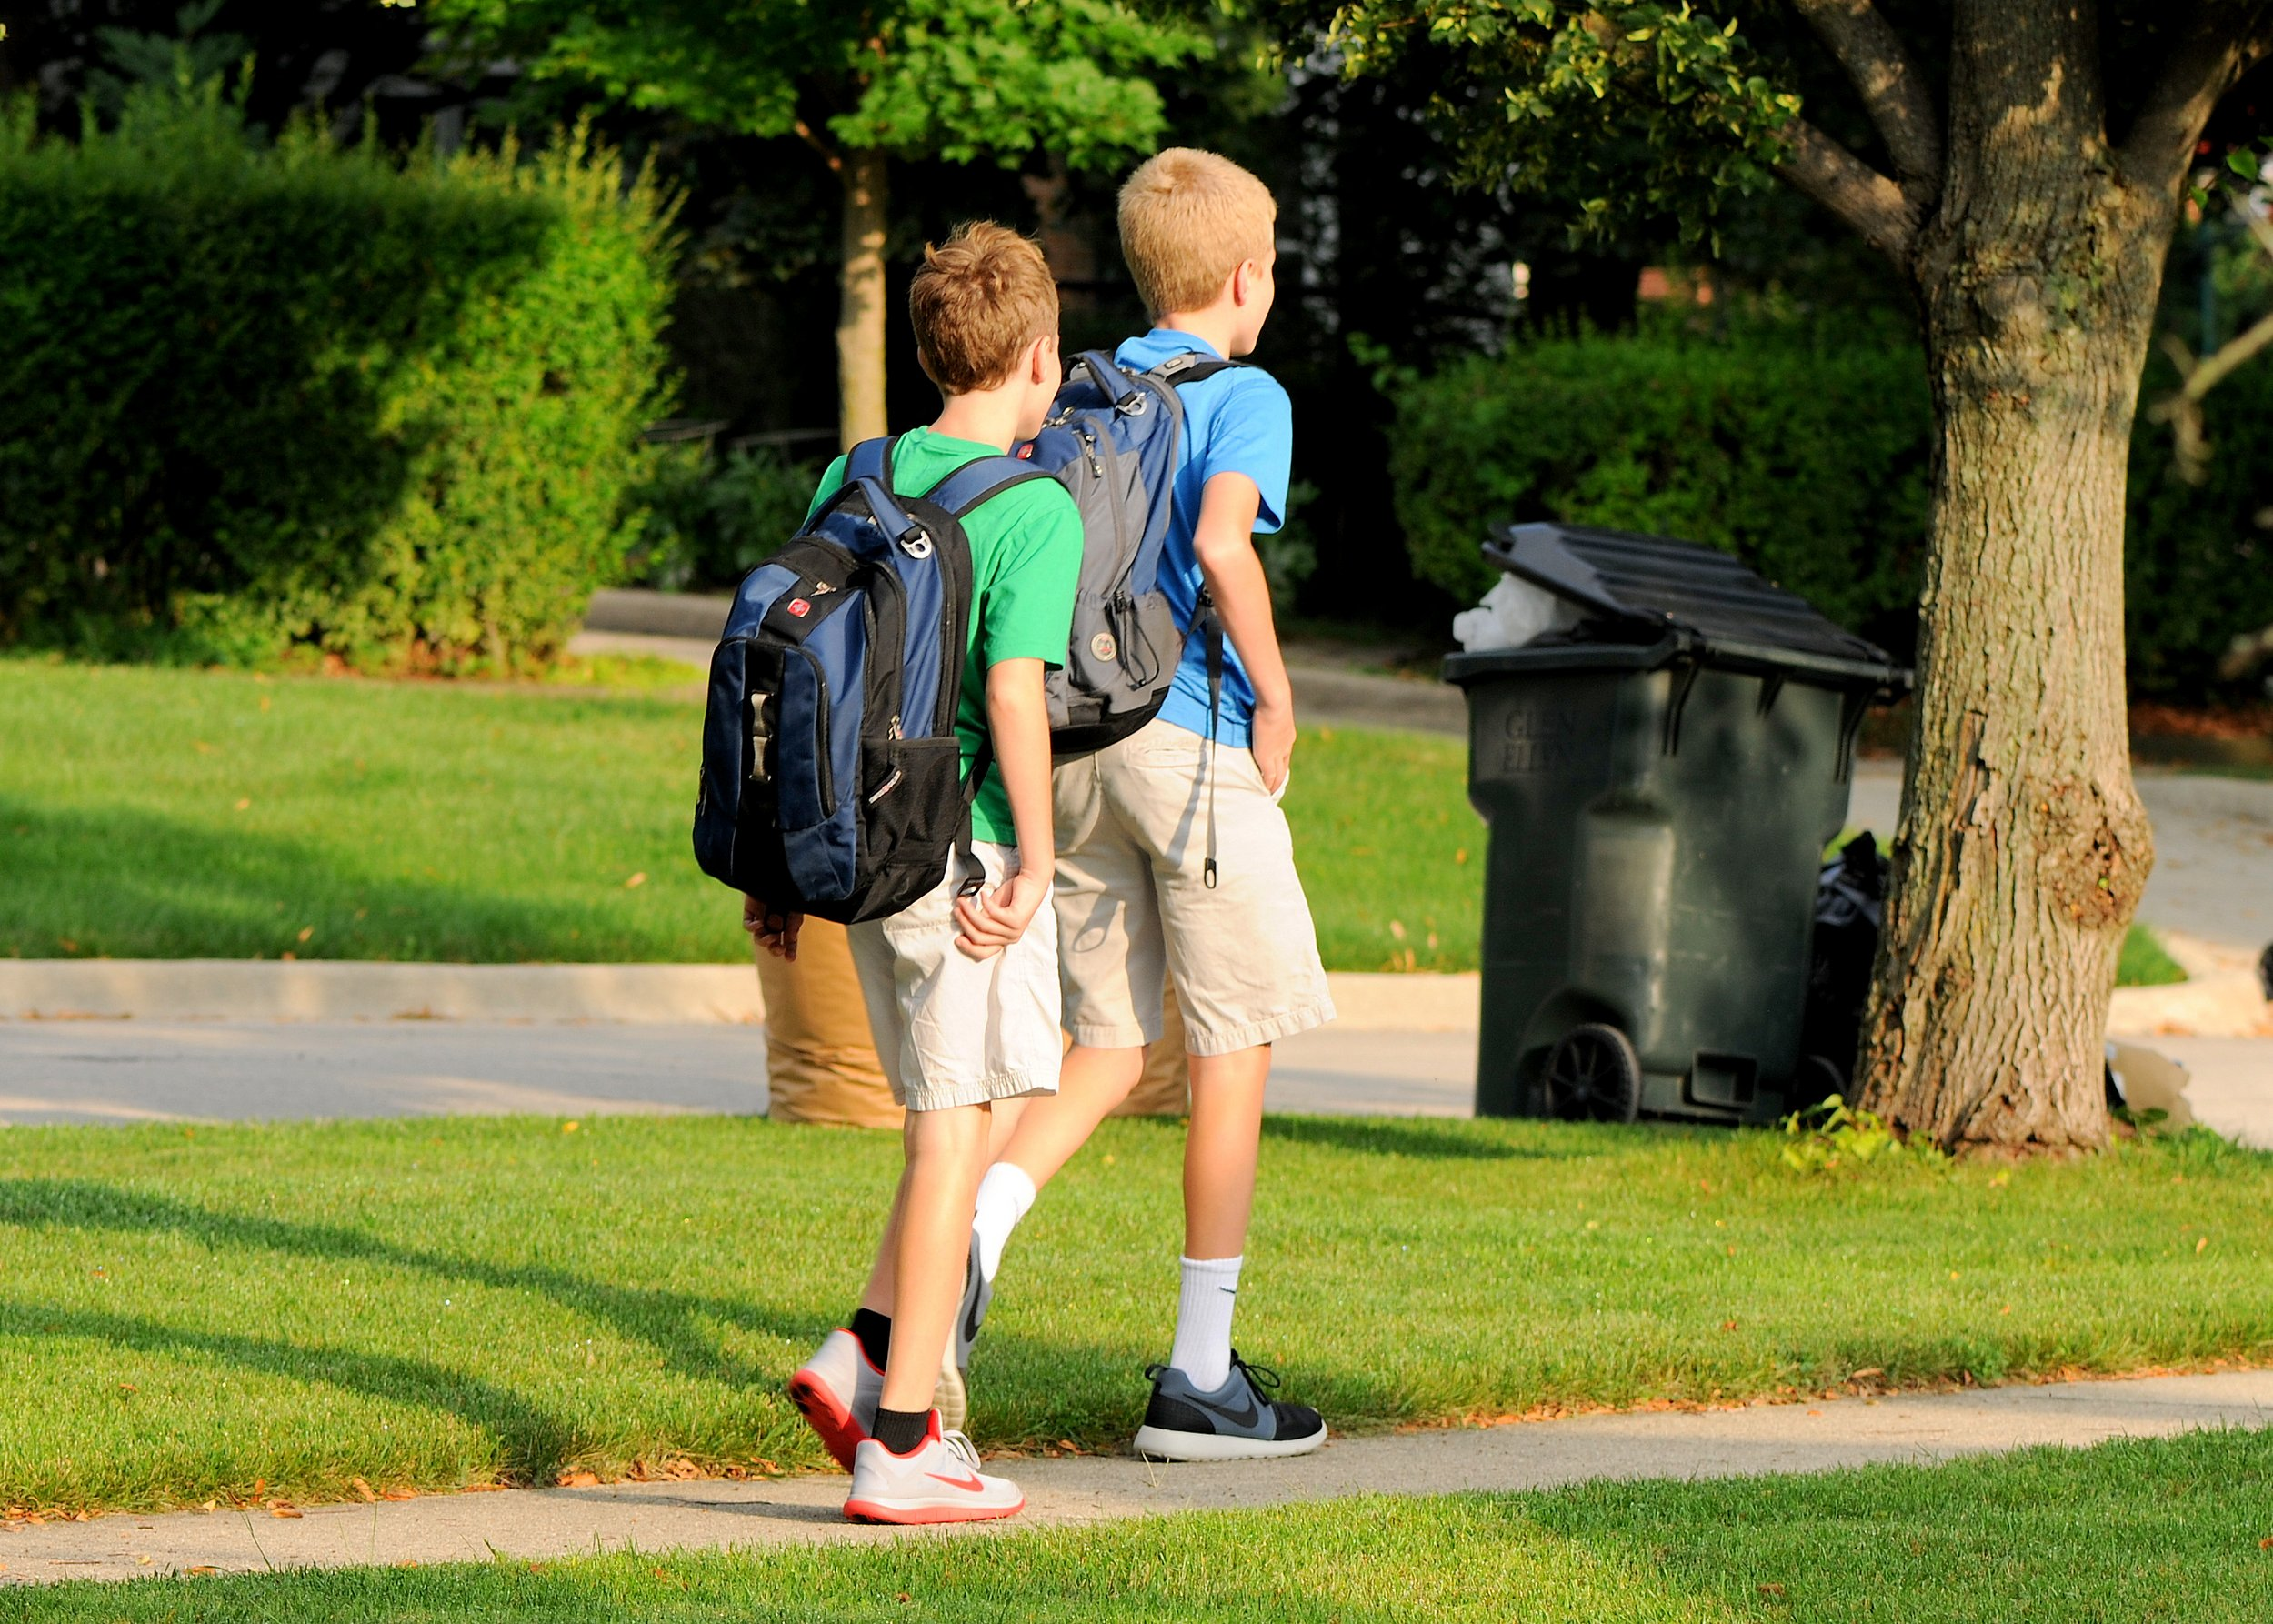 """ Walking to the Bus for the First Day of School - Dryver & Stryde Heading off to Hadley Middle School - 2014 "" by  Jim Larrison  ( CC BY 2.0 )"